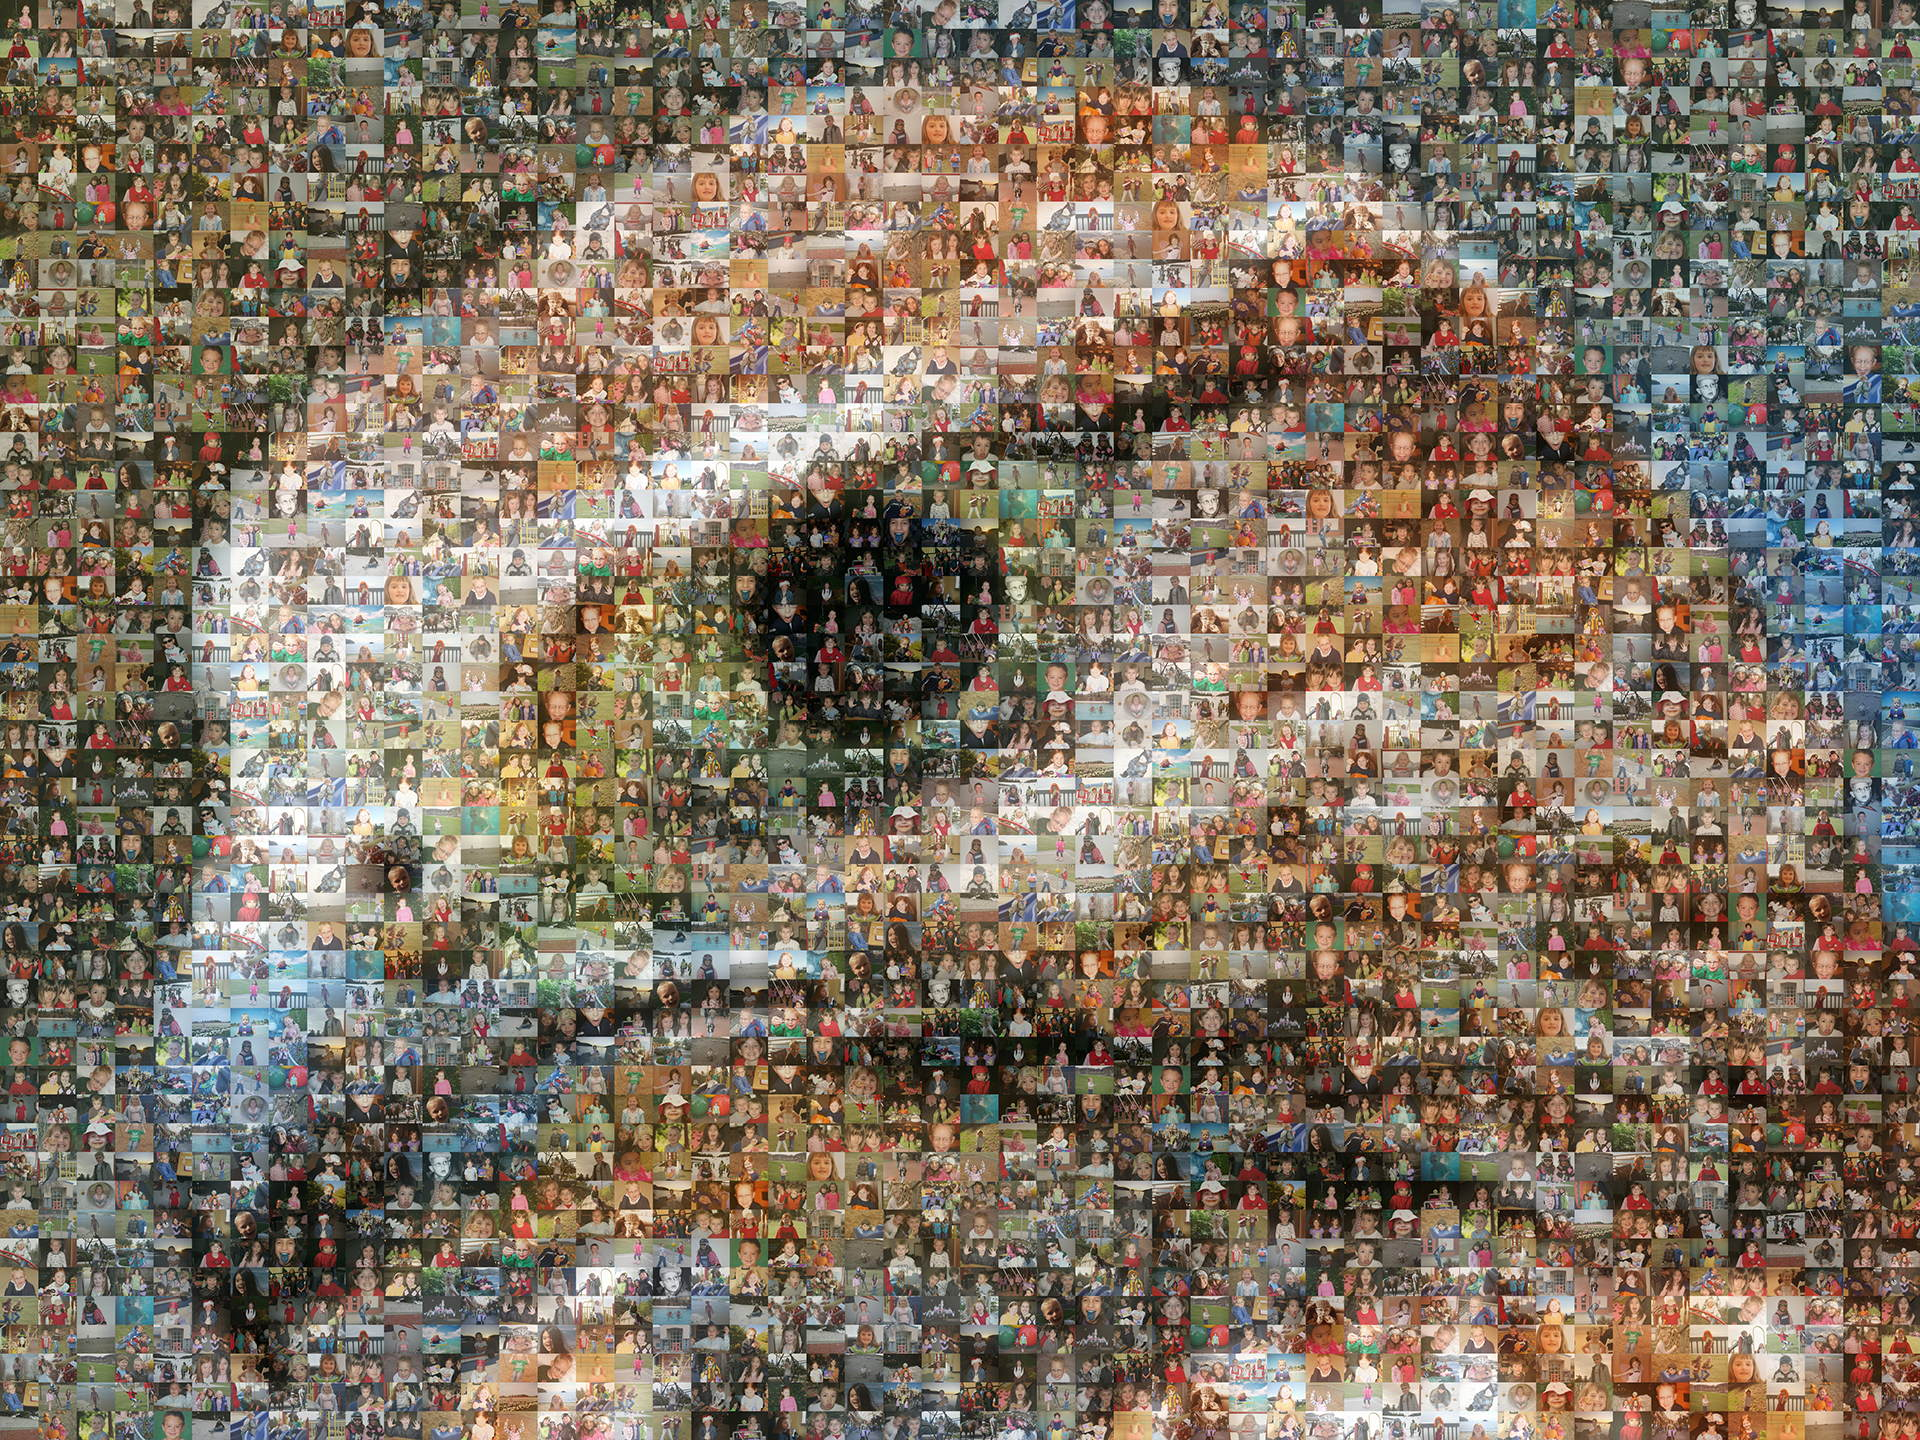 photo mosaic created using 200 student photos